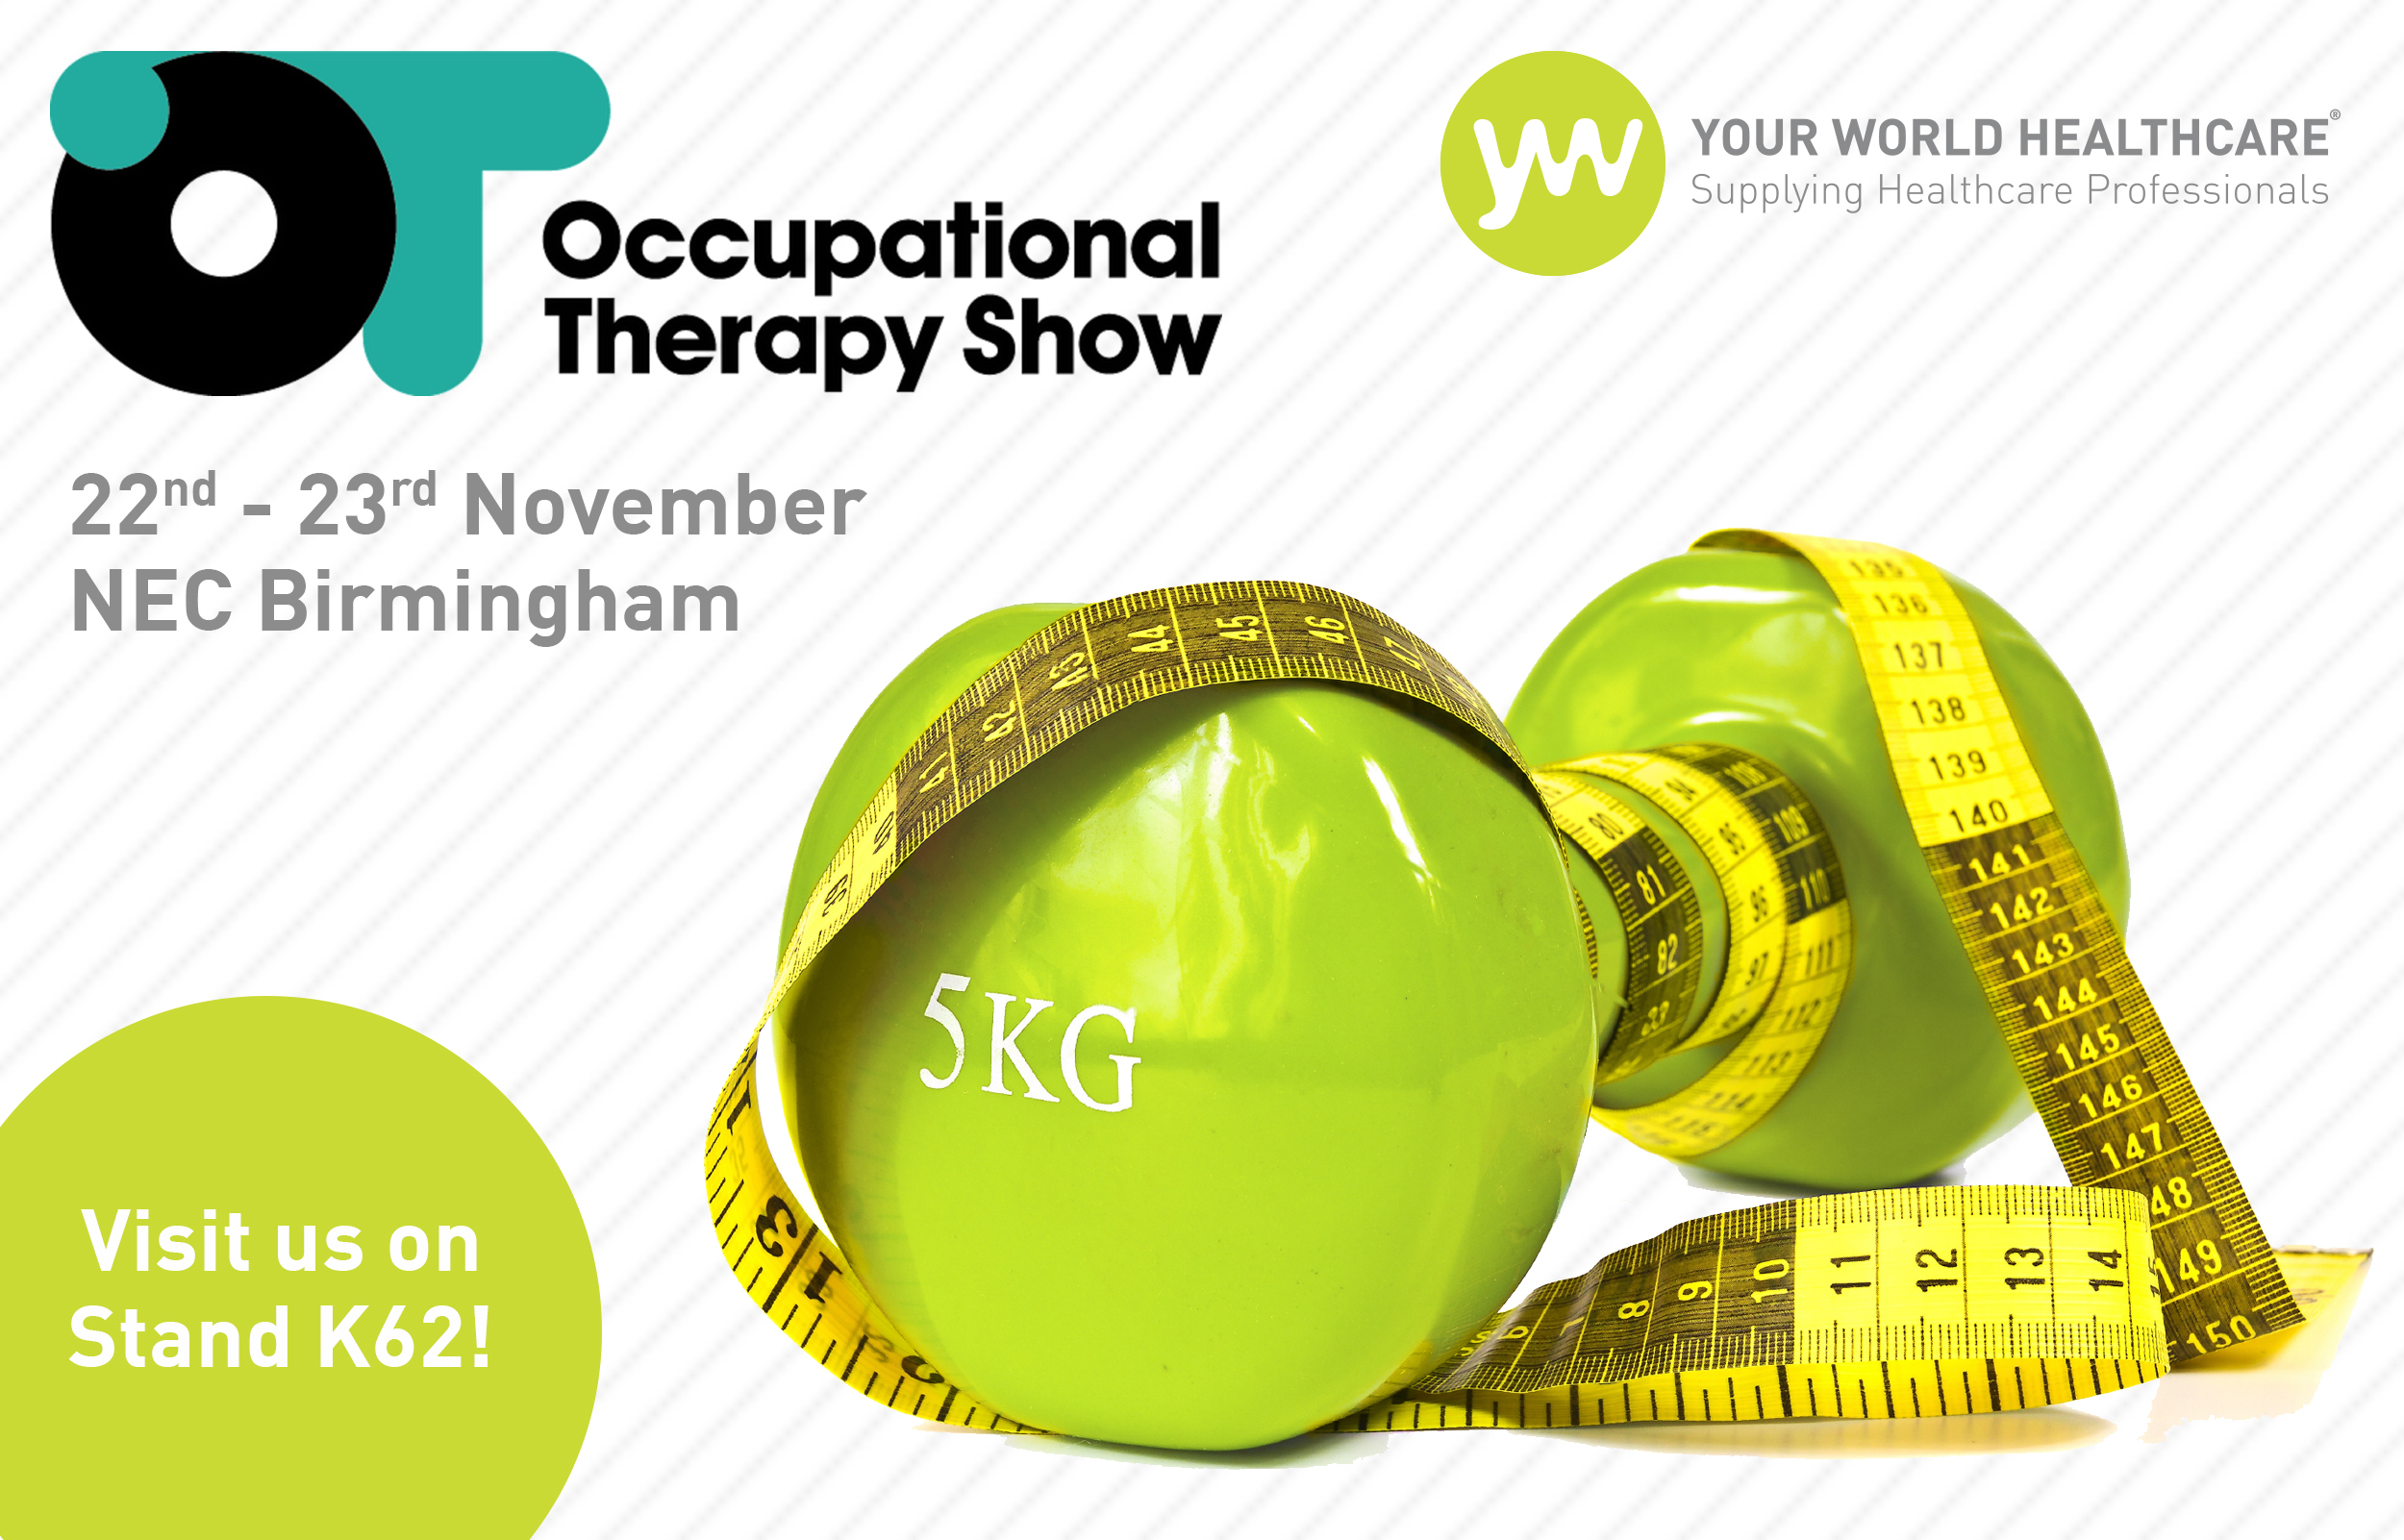 Occupational Therapy Show 2017